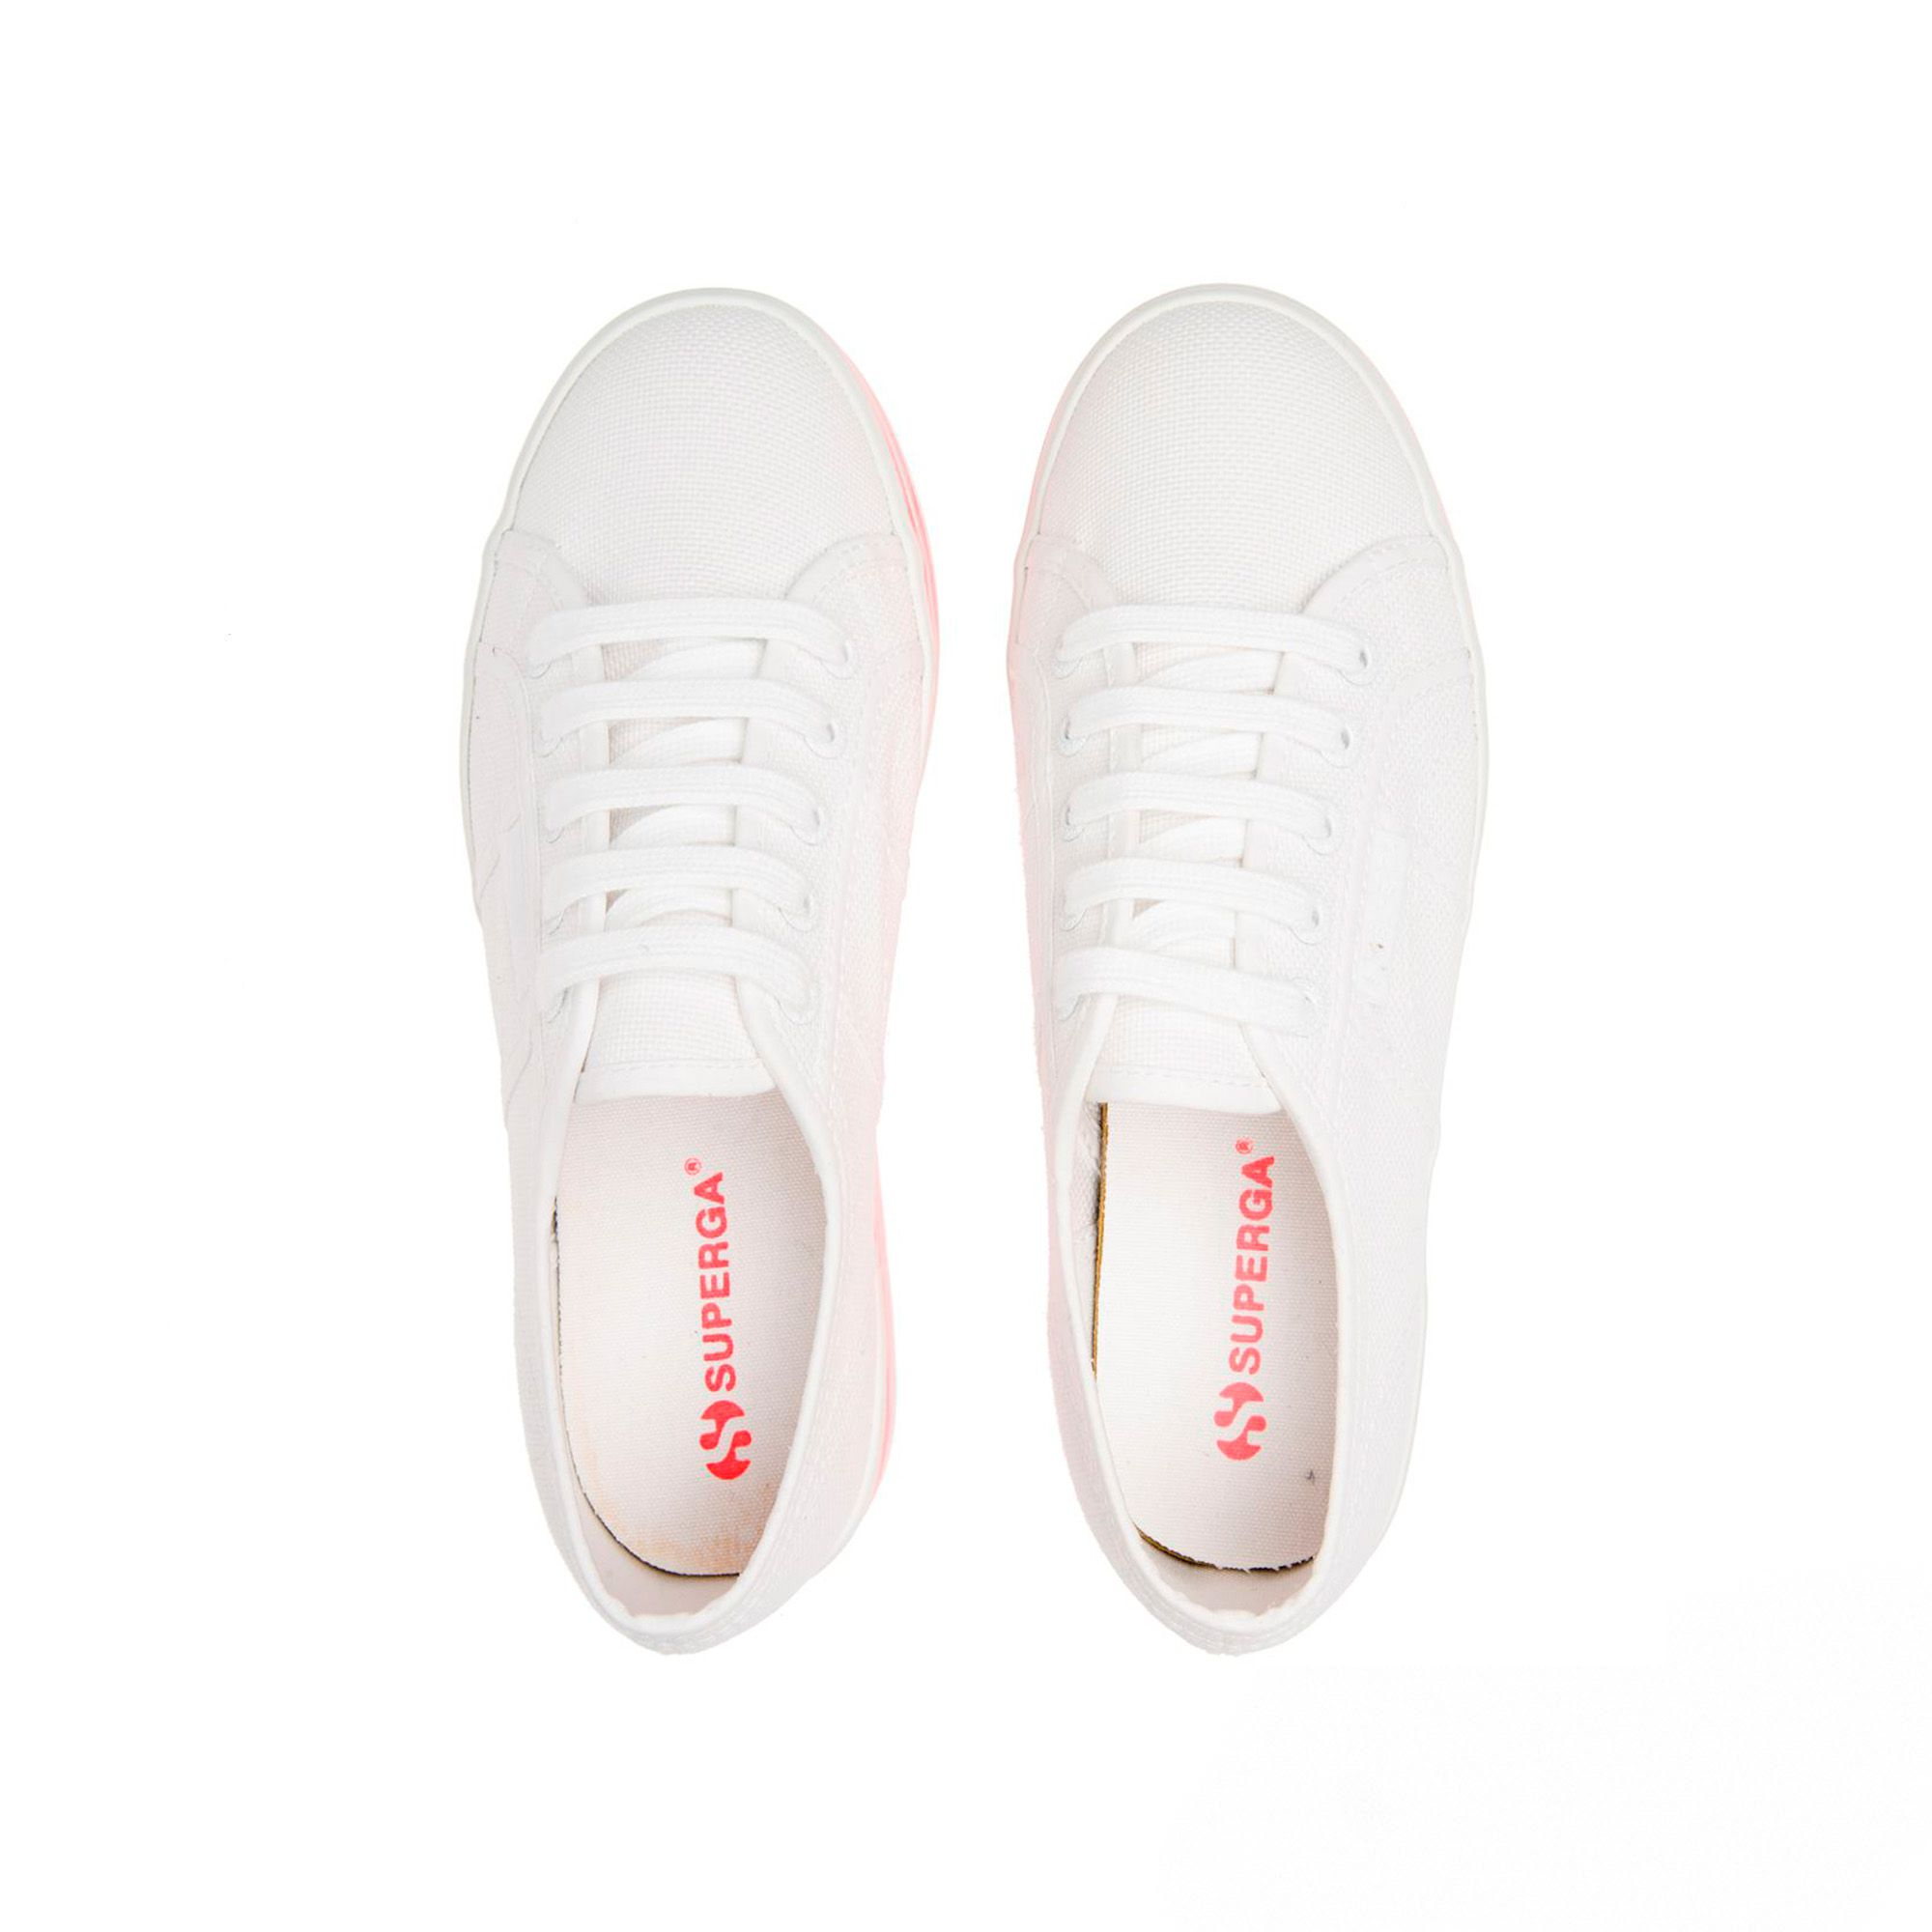 2790-MULTICOLOR COTW- White-Red Fluo Strip